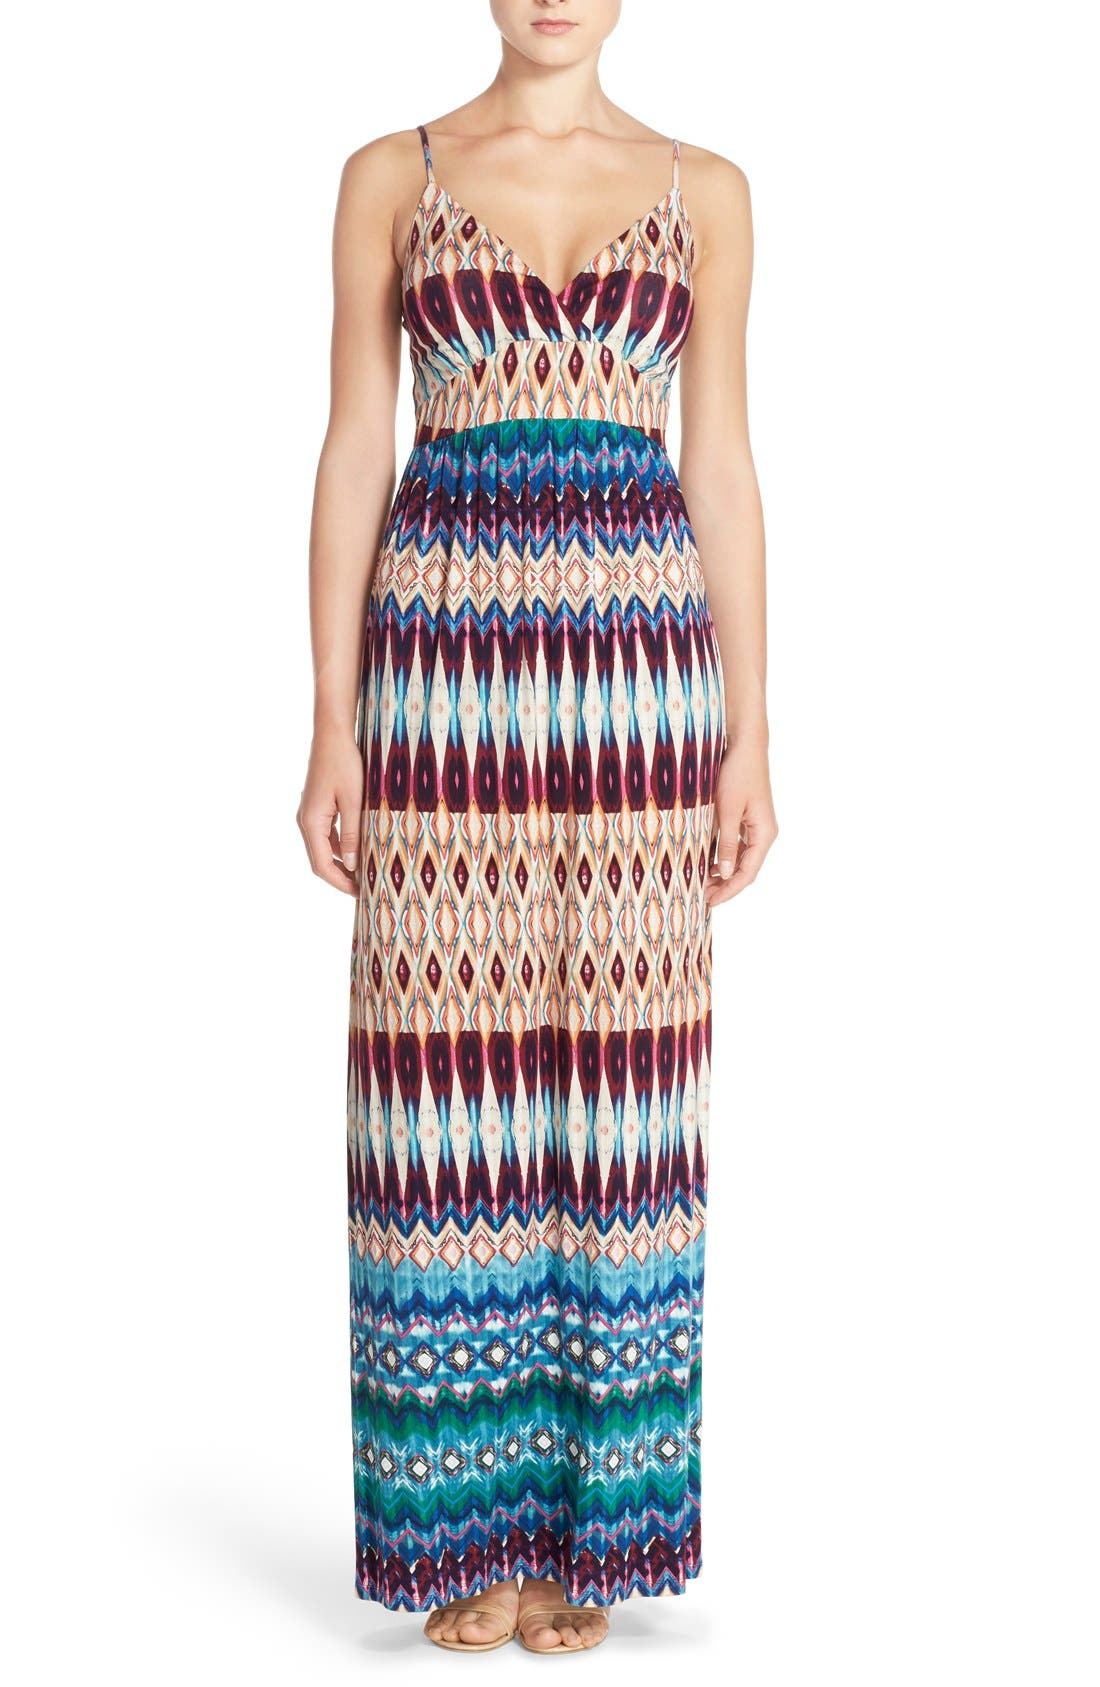 Felicity & Coco Floral Print Jersey Maxi Dress (Regular & Petite) (Nordstrom Exclusive)